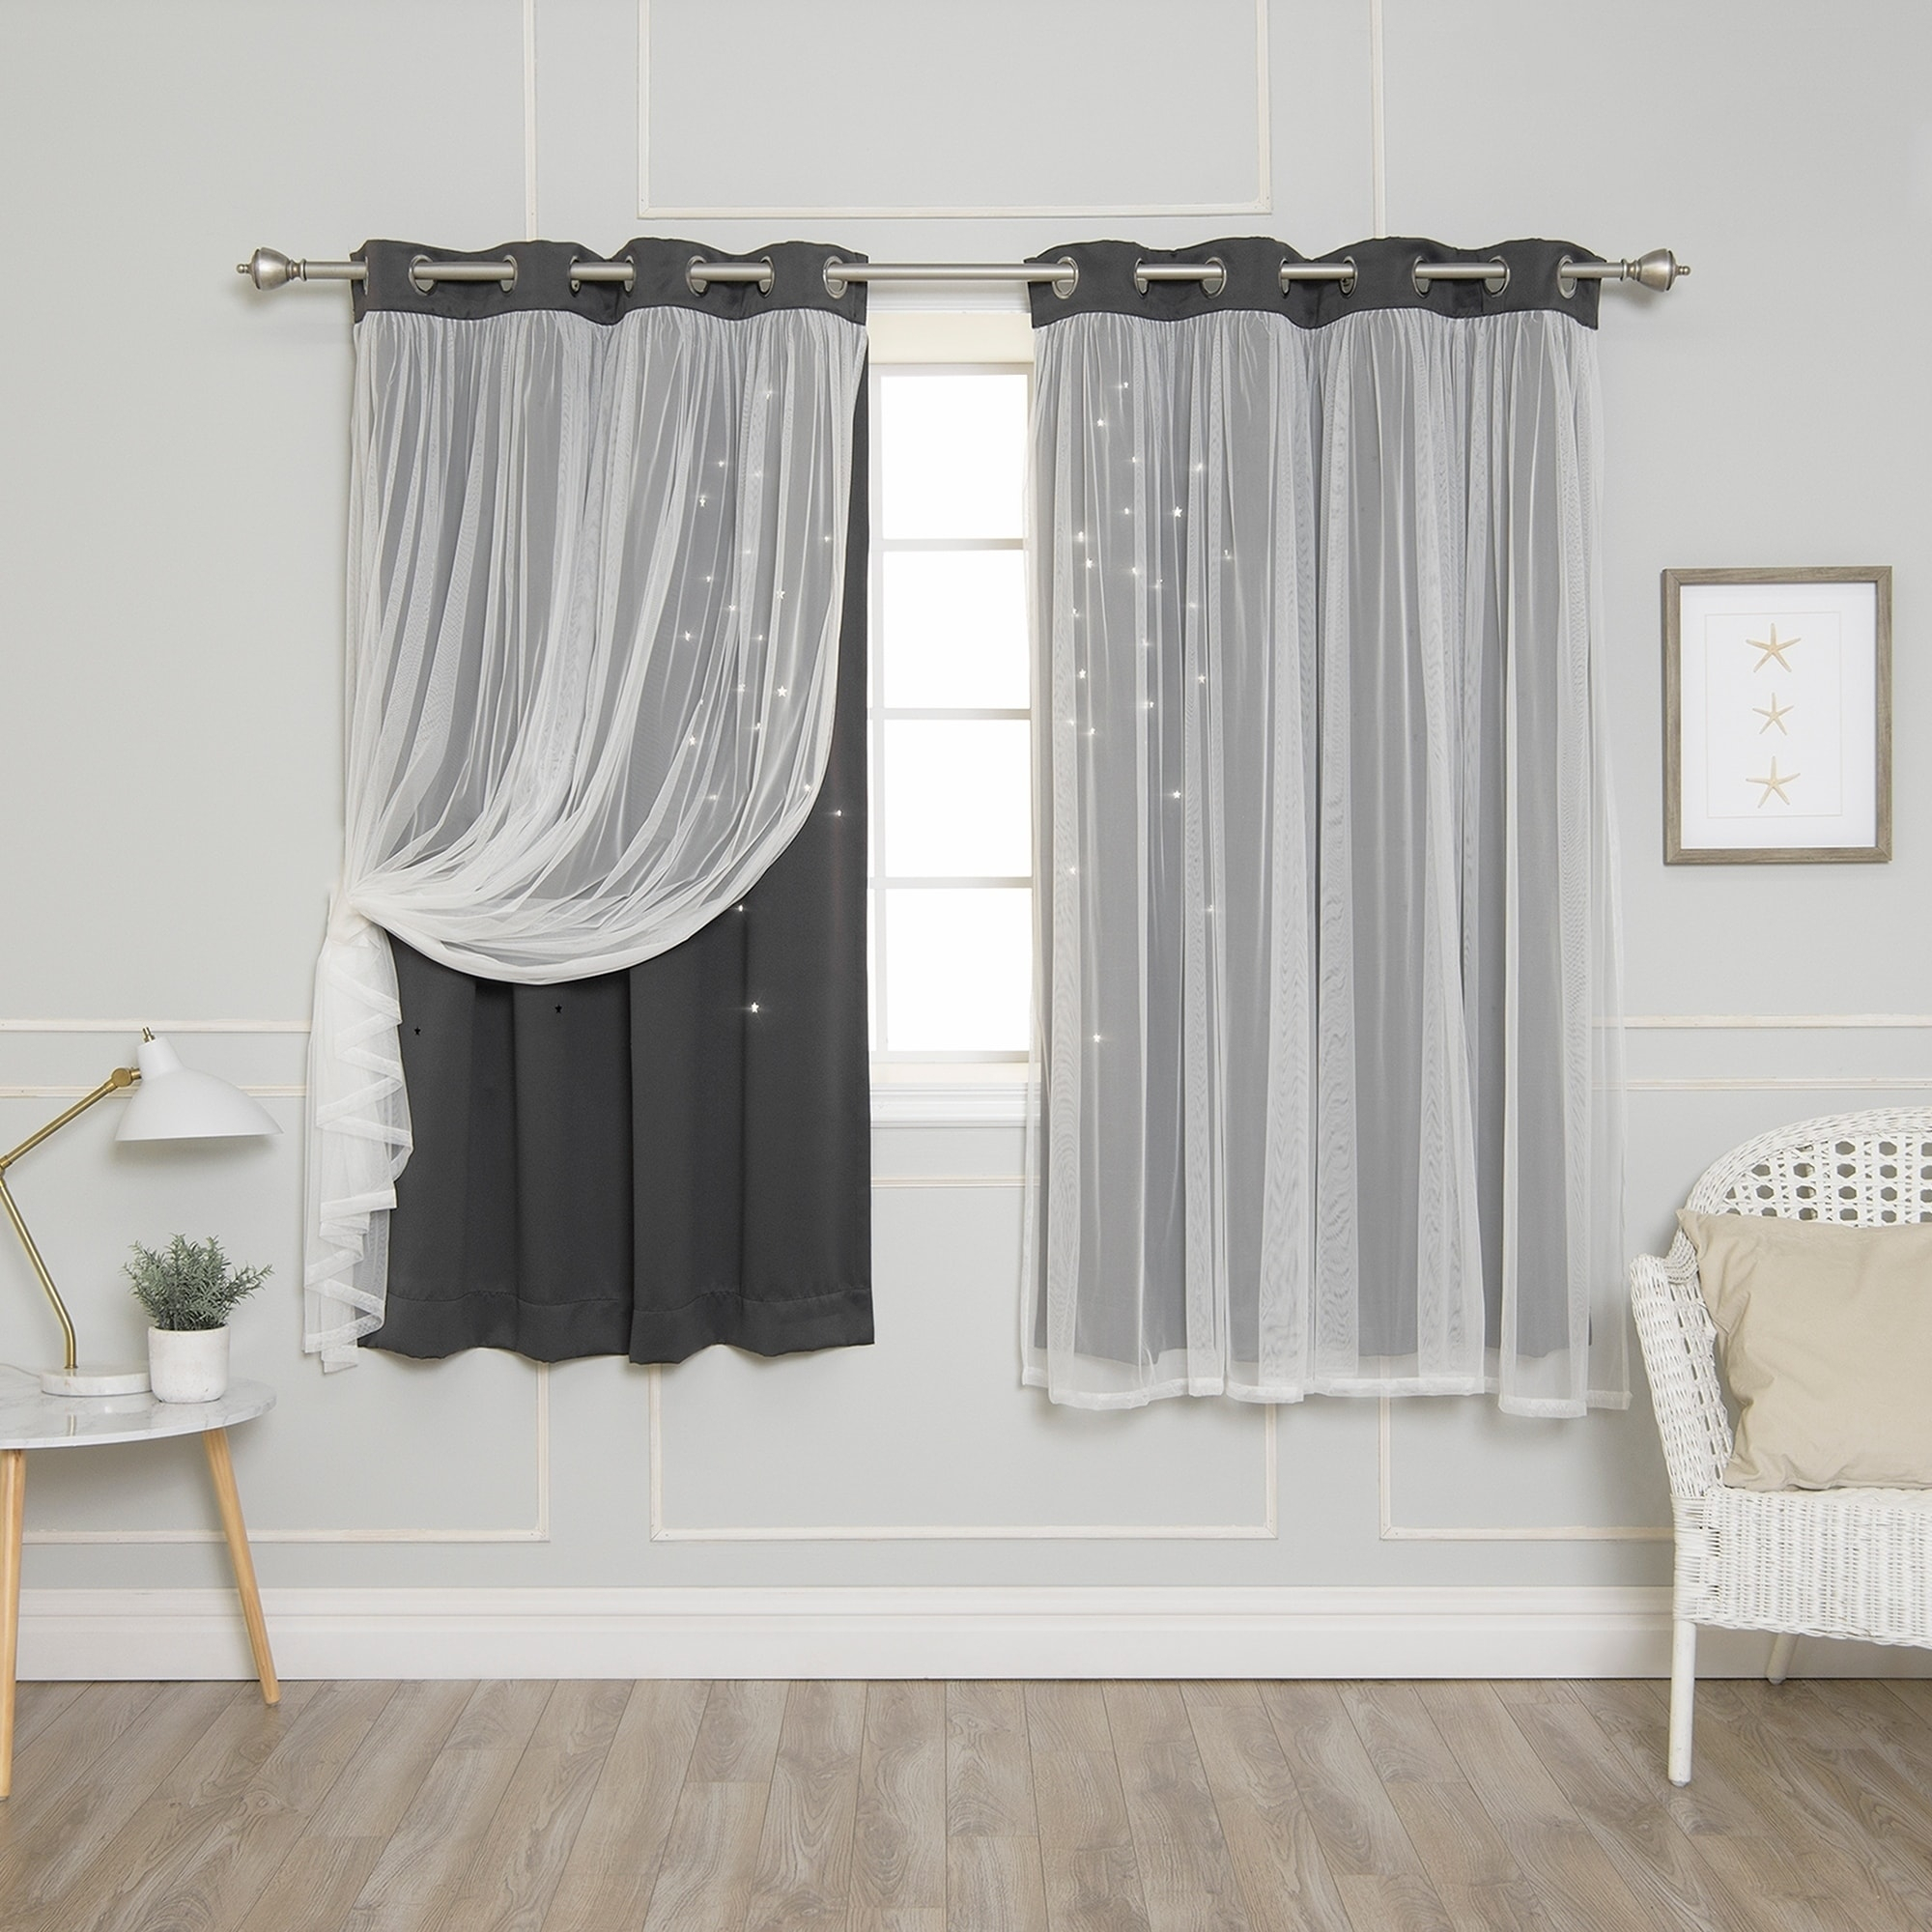 Aurora Home Star Punch Tulle Overlay Blackout Curtains (63 Within Star Punch Tulle Overlay Blackout Curtain Panel Pairs (View 5 of 30)